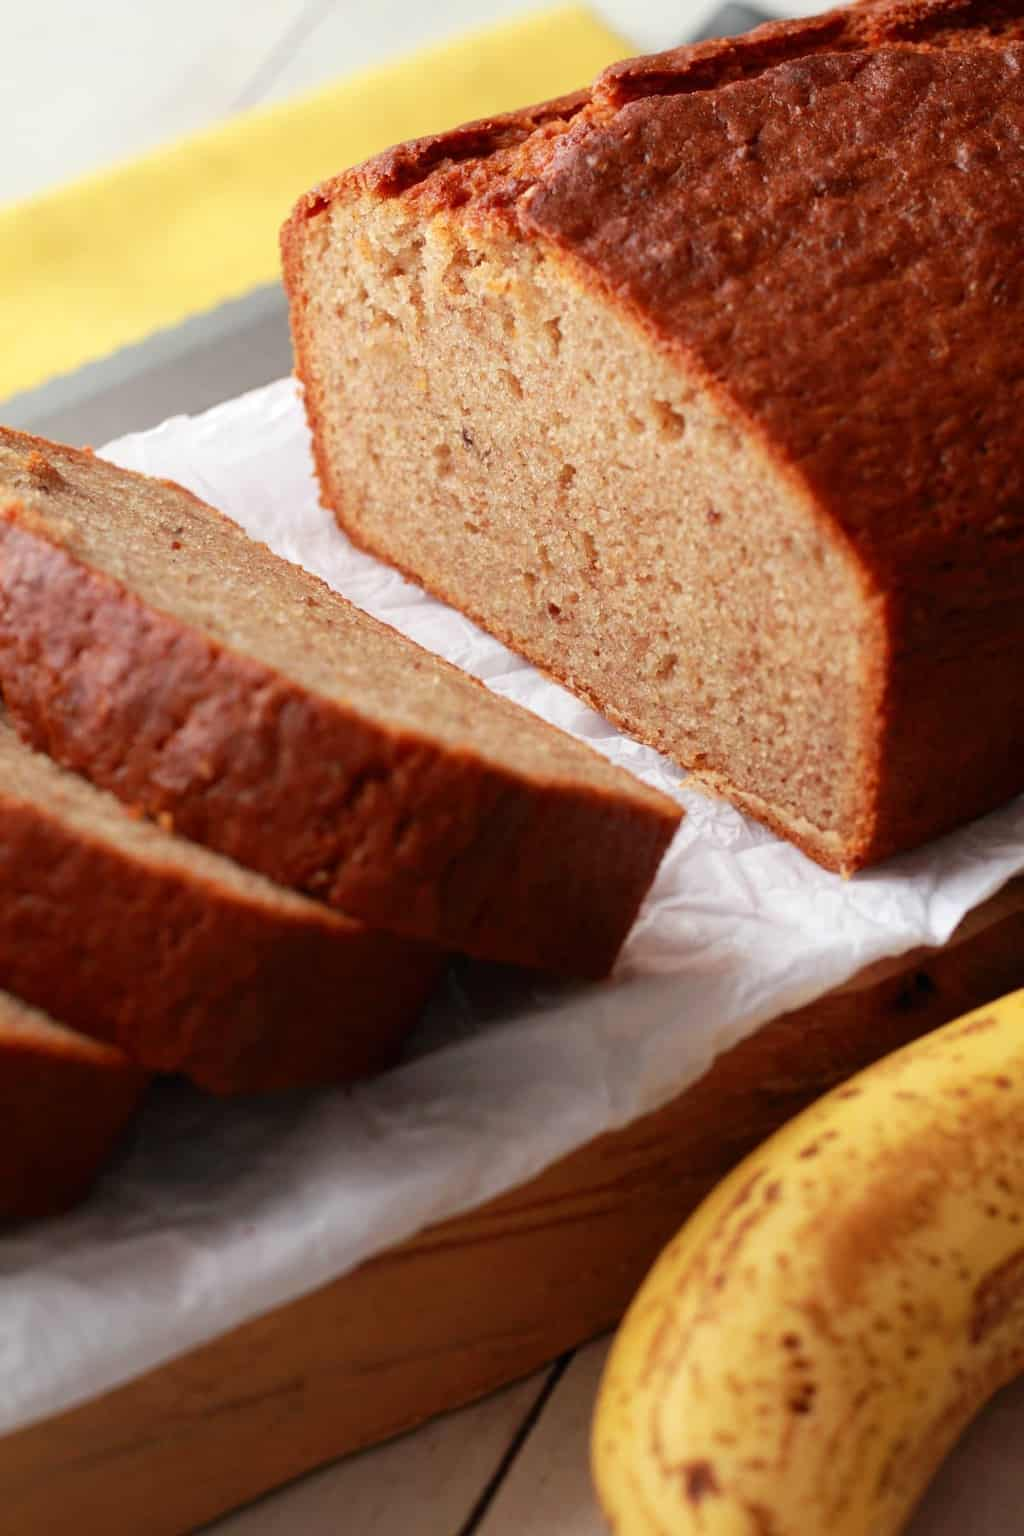 Sliced Vegan Banana Bread on parchment paper, a yellow napkin in the background.